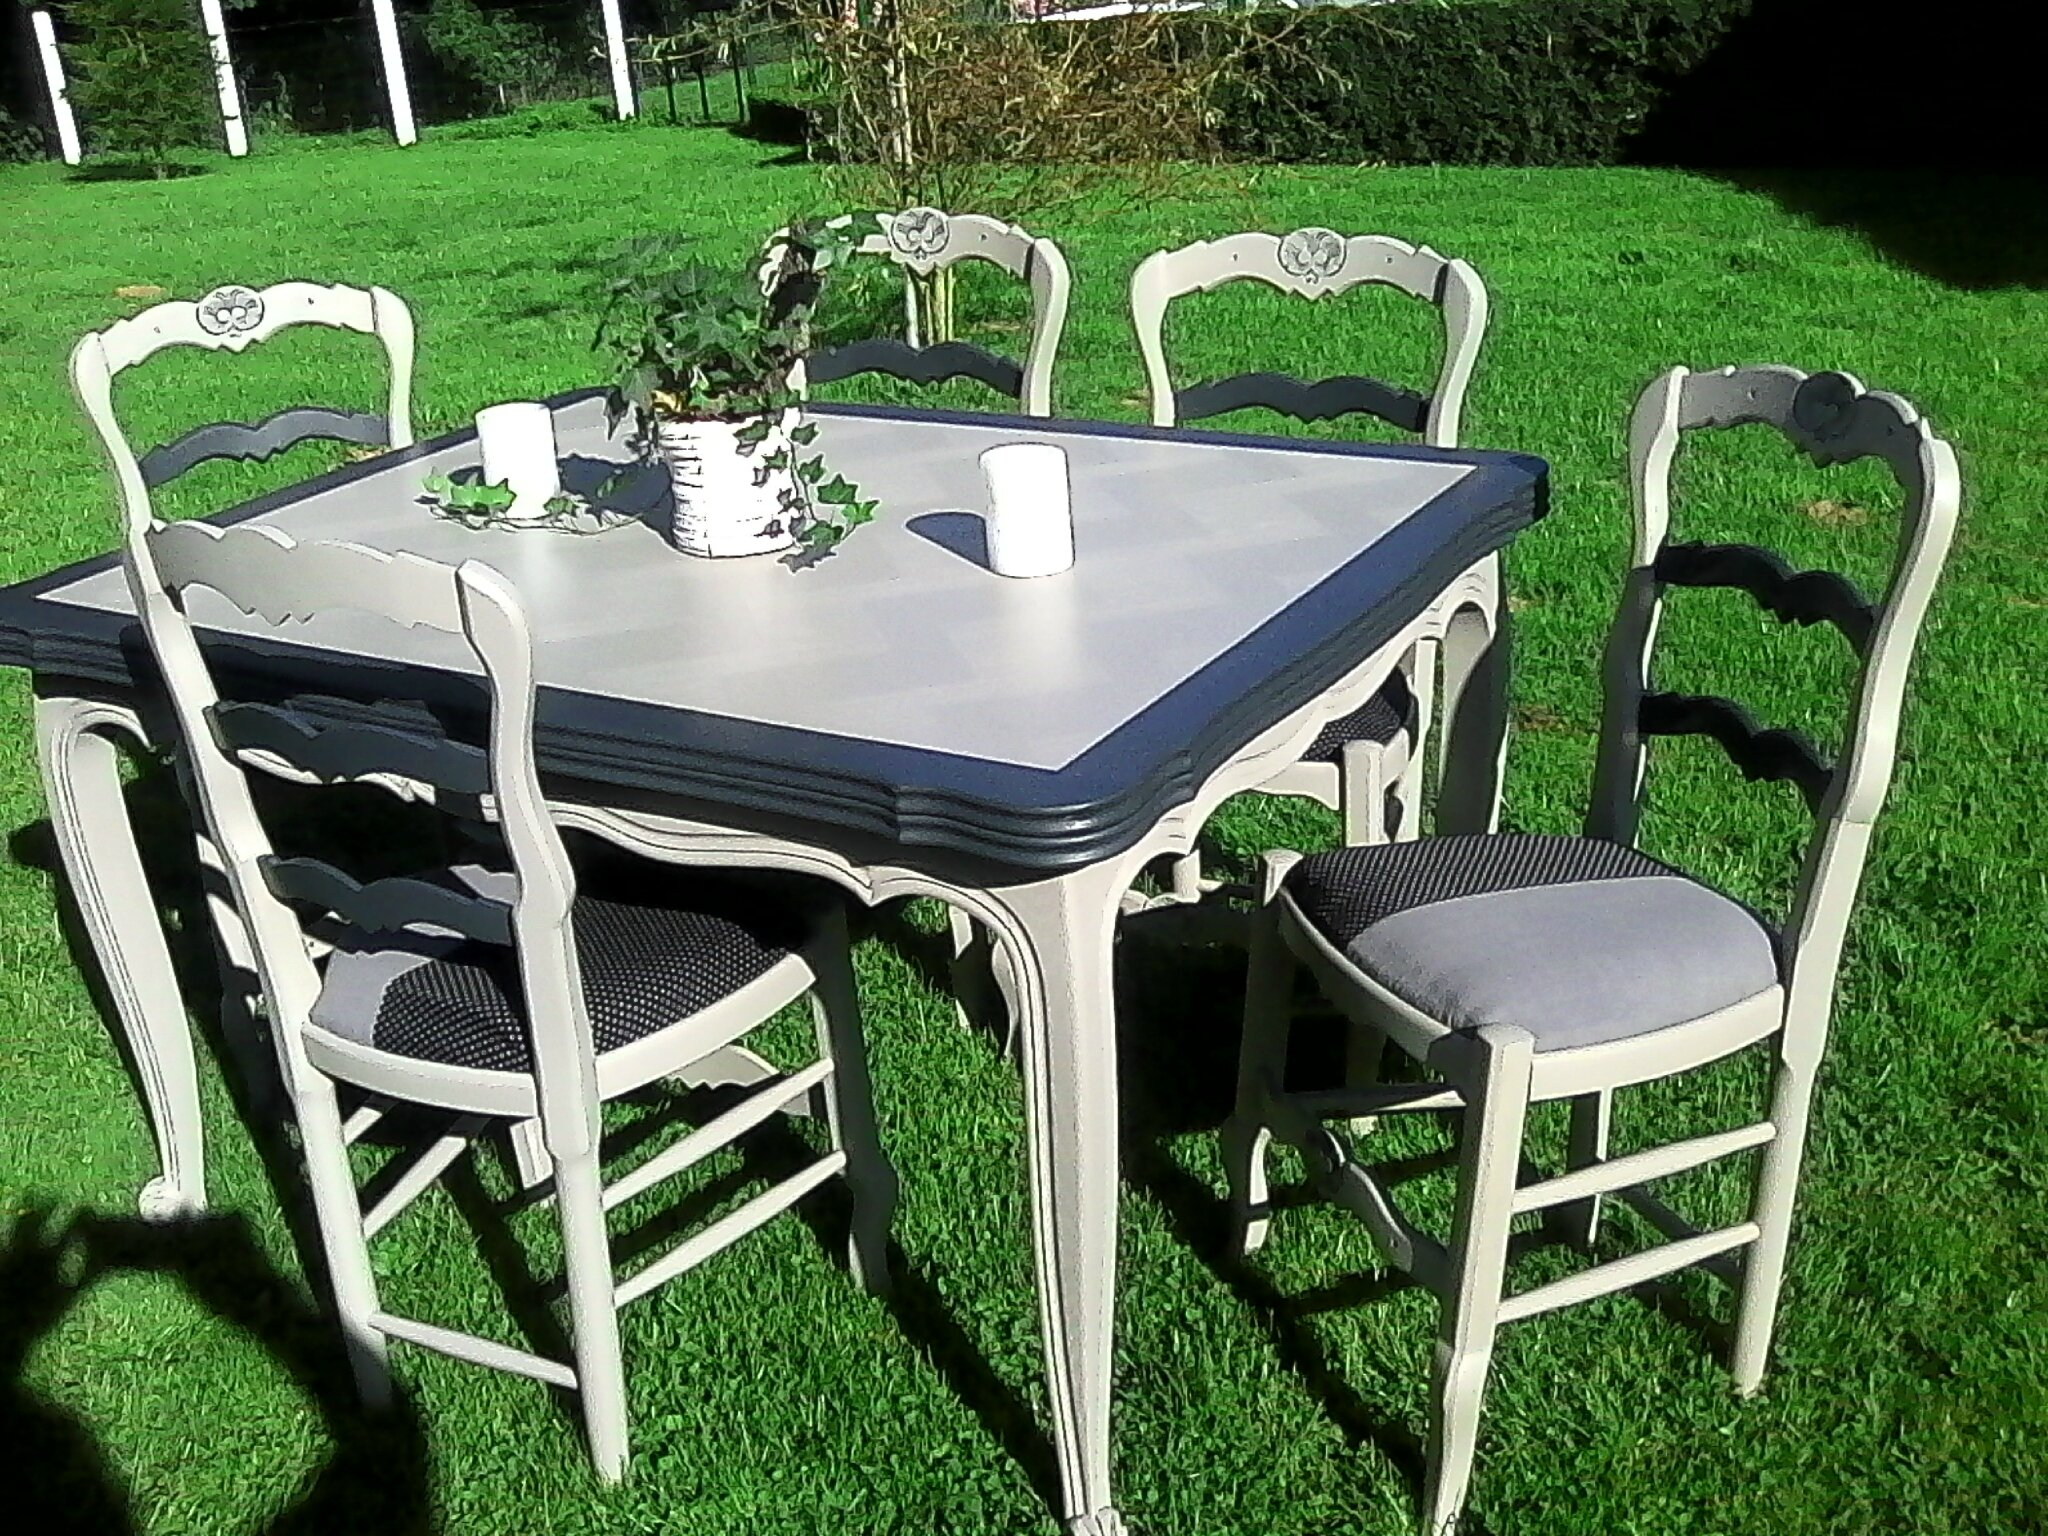 reste table et chaise vendre merci 120 euros l ensembles relook meubles62. Black Bedroom Furniture Sets. Home Design Ideas